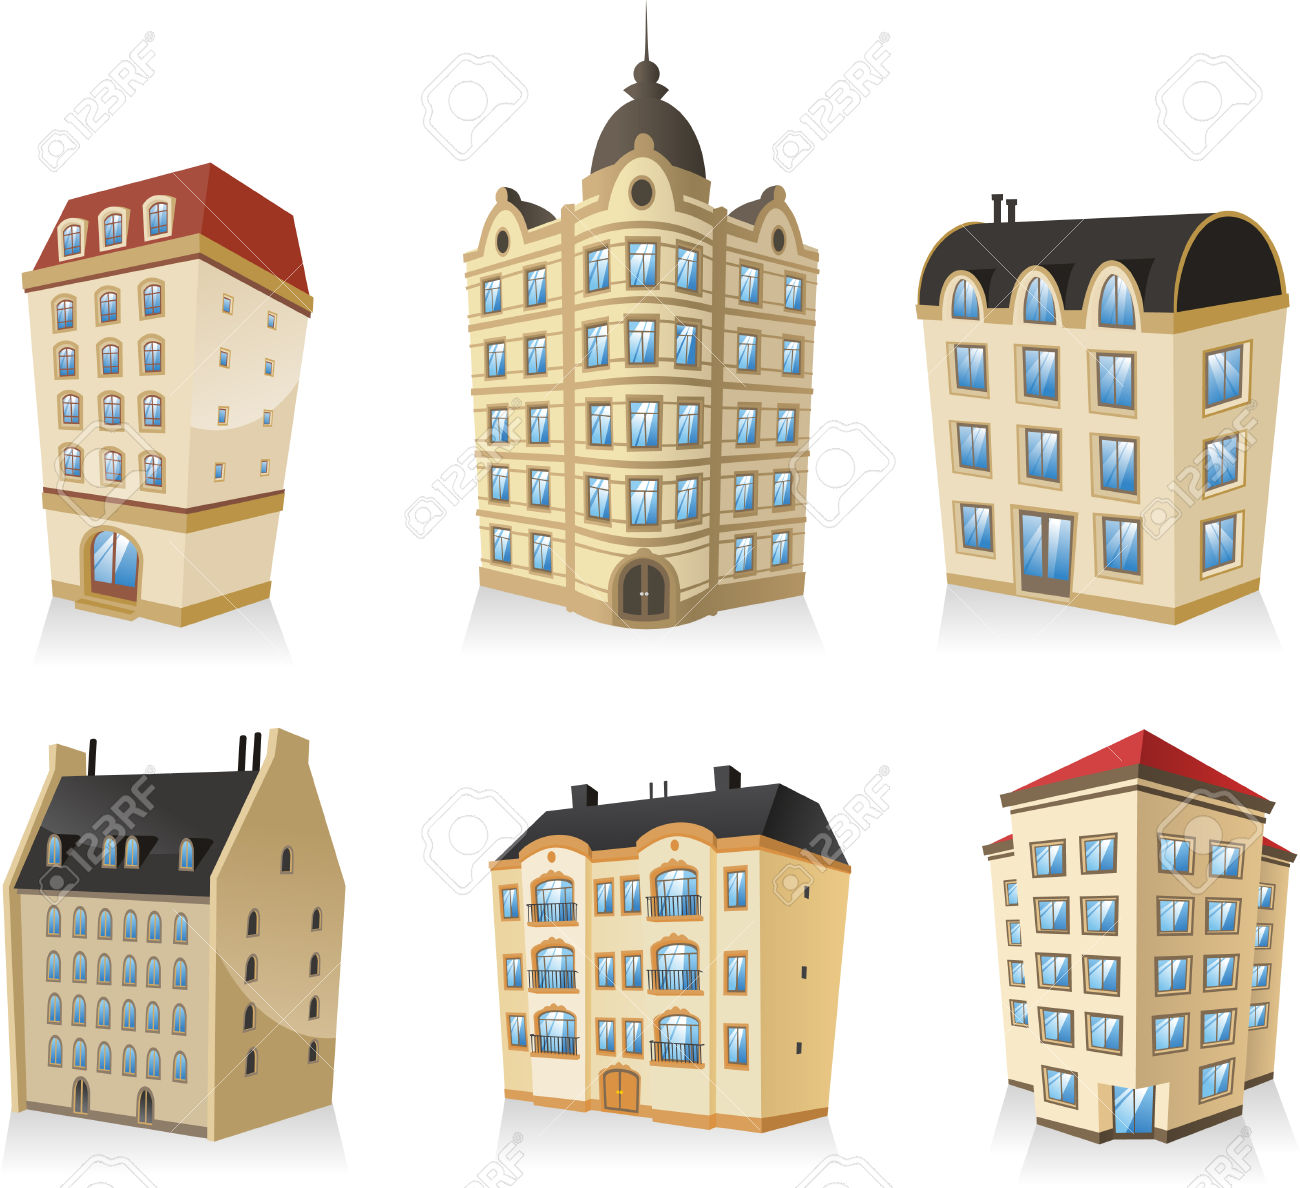 Set 01, Rich Luxury High Class Classic Building Edifice Structure.